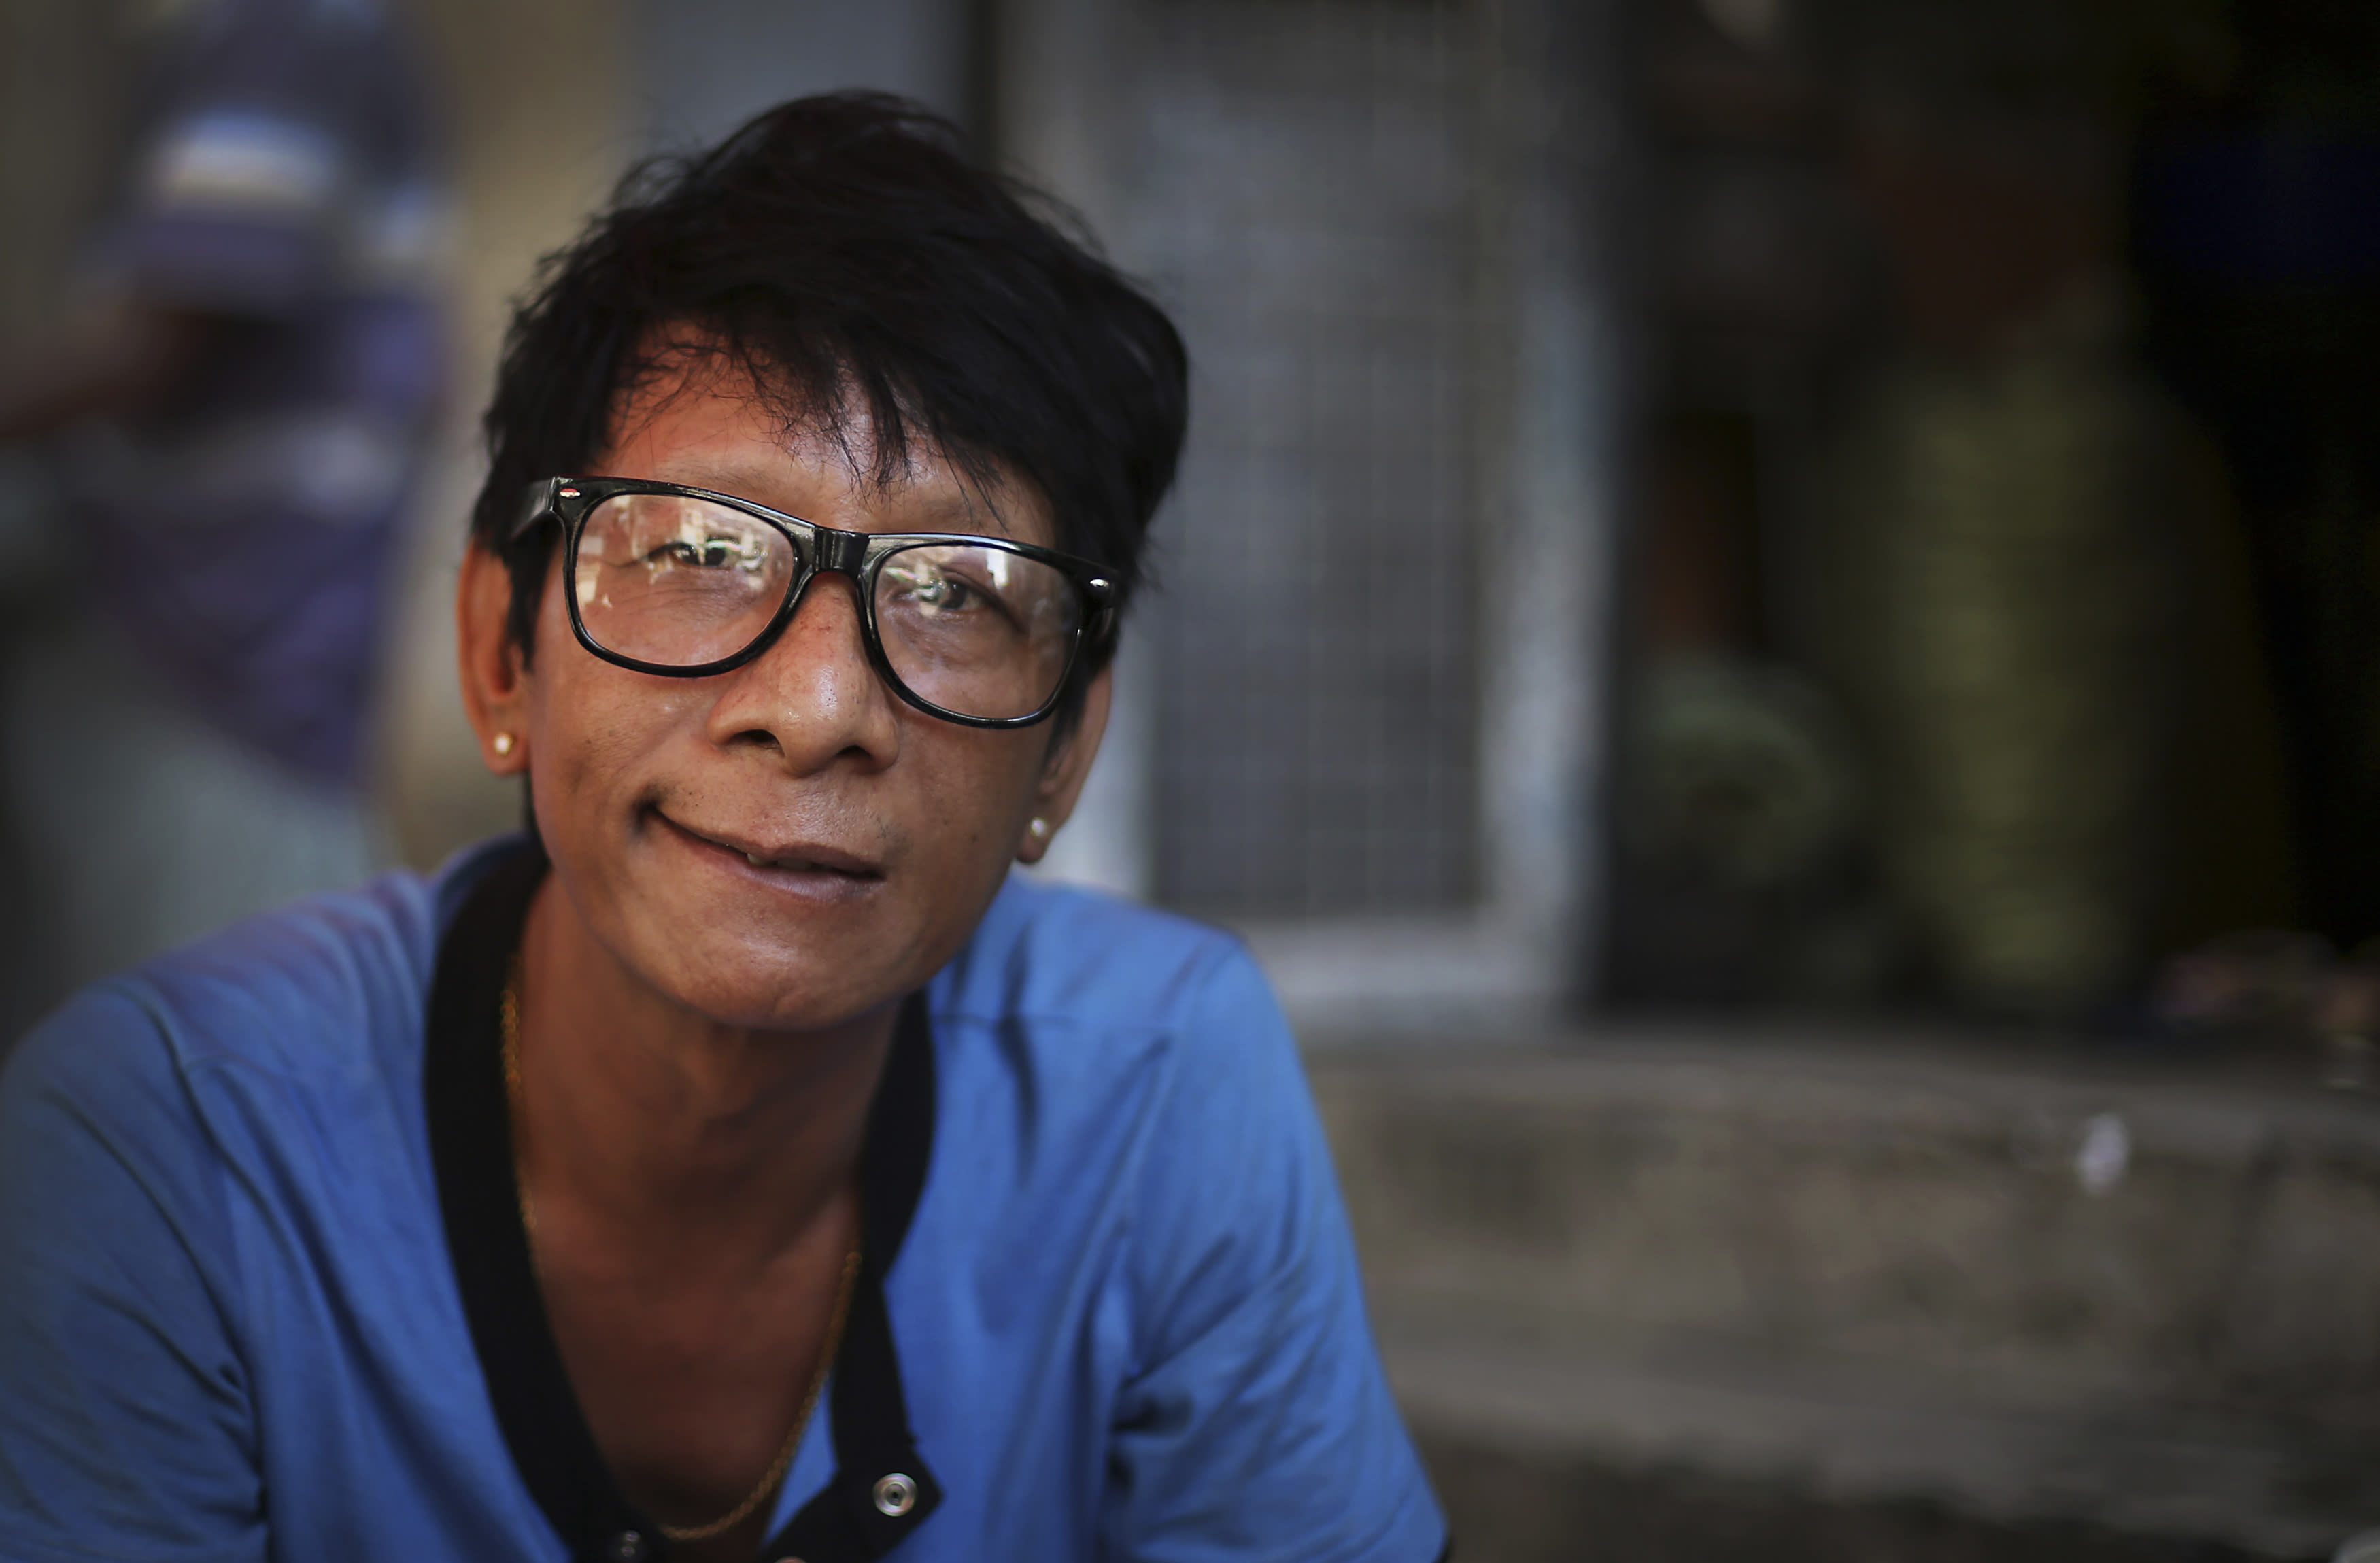 Bad guy blues: Myanmar villains struggle to get by